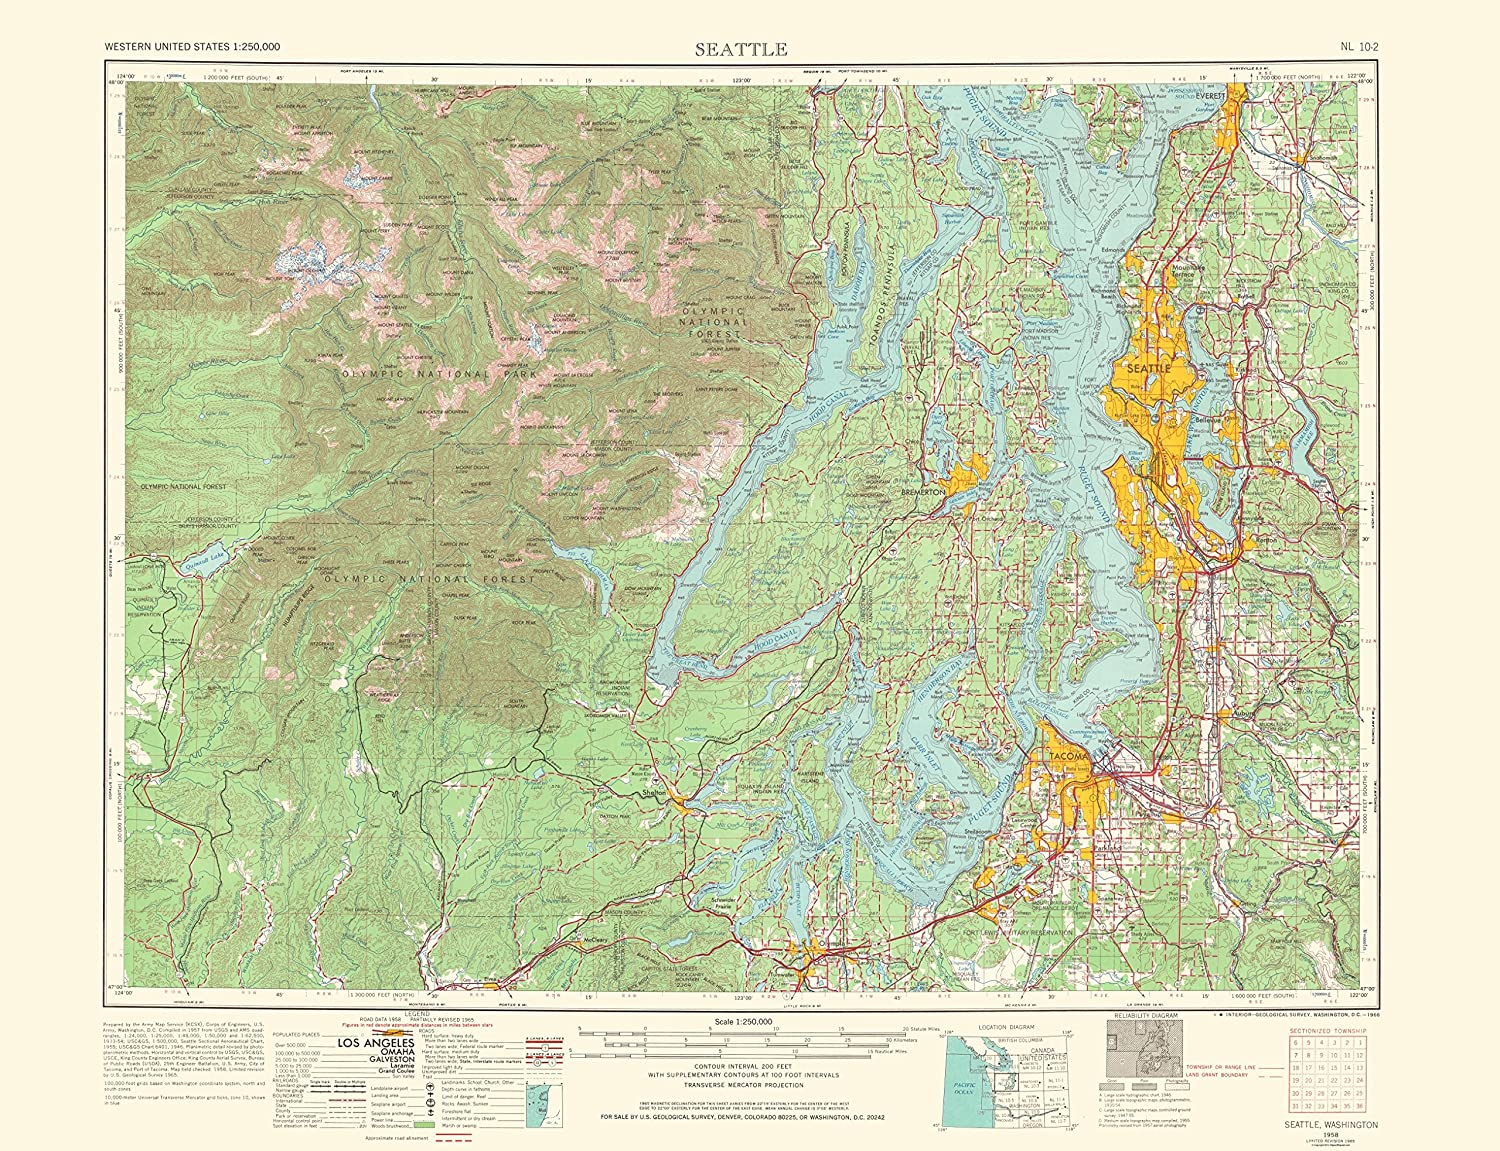 Amazoncom Topographical Map Print Seattle Washington Usgs - Seattle-washington-location-on-us-map